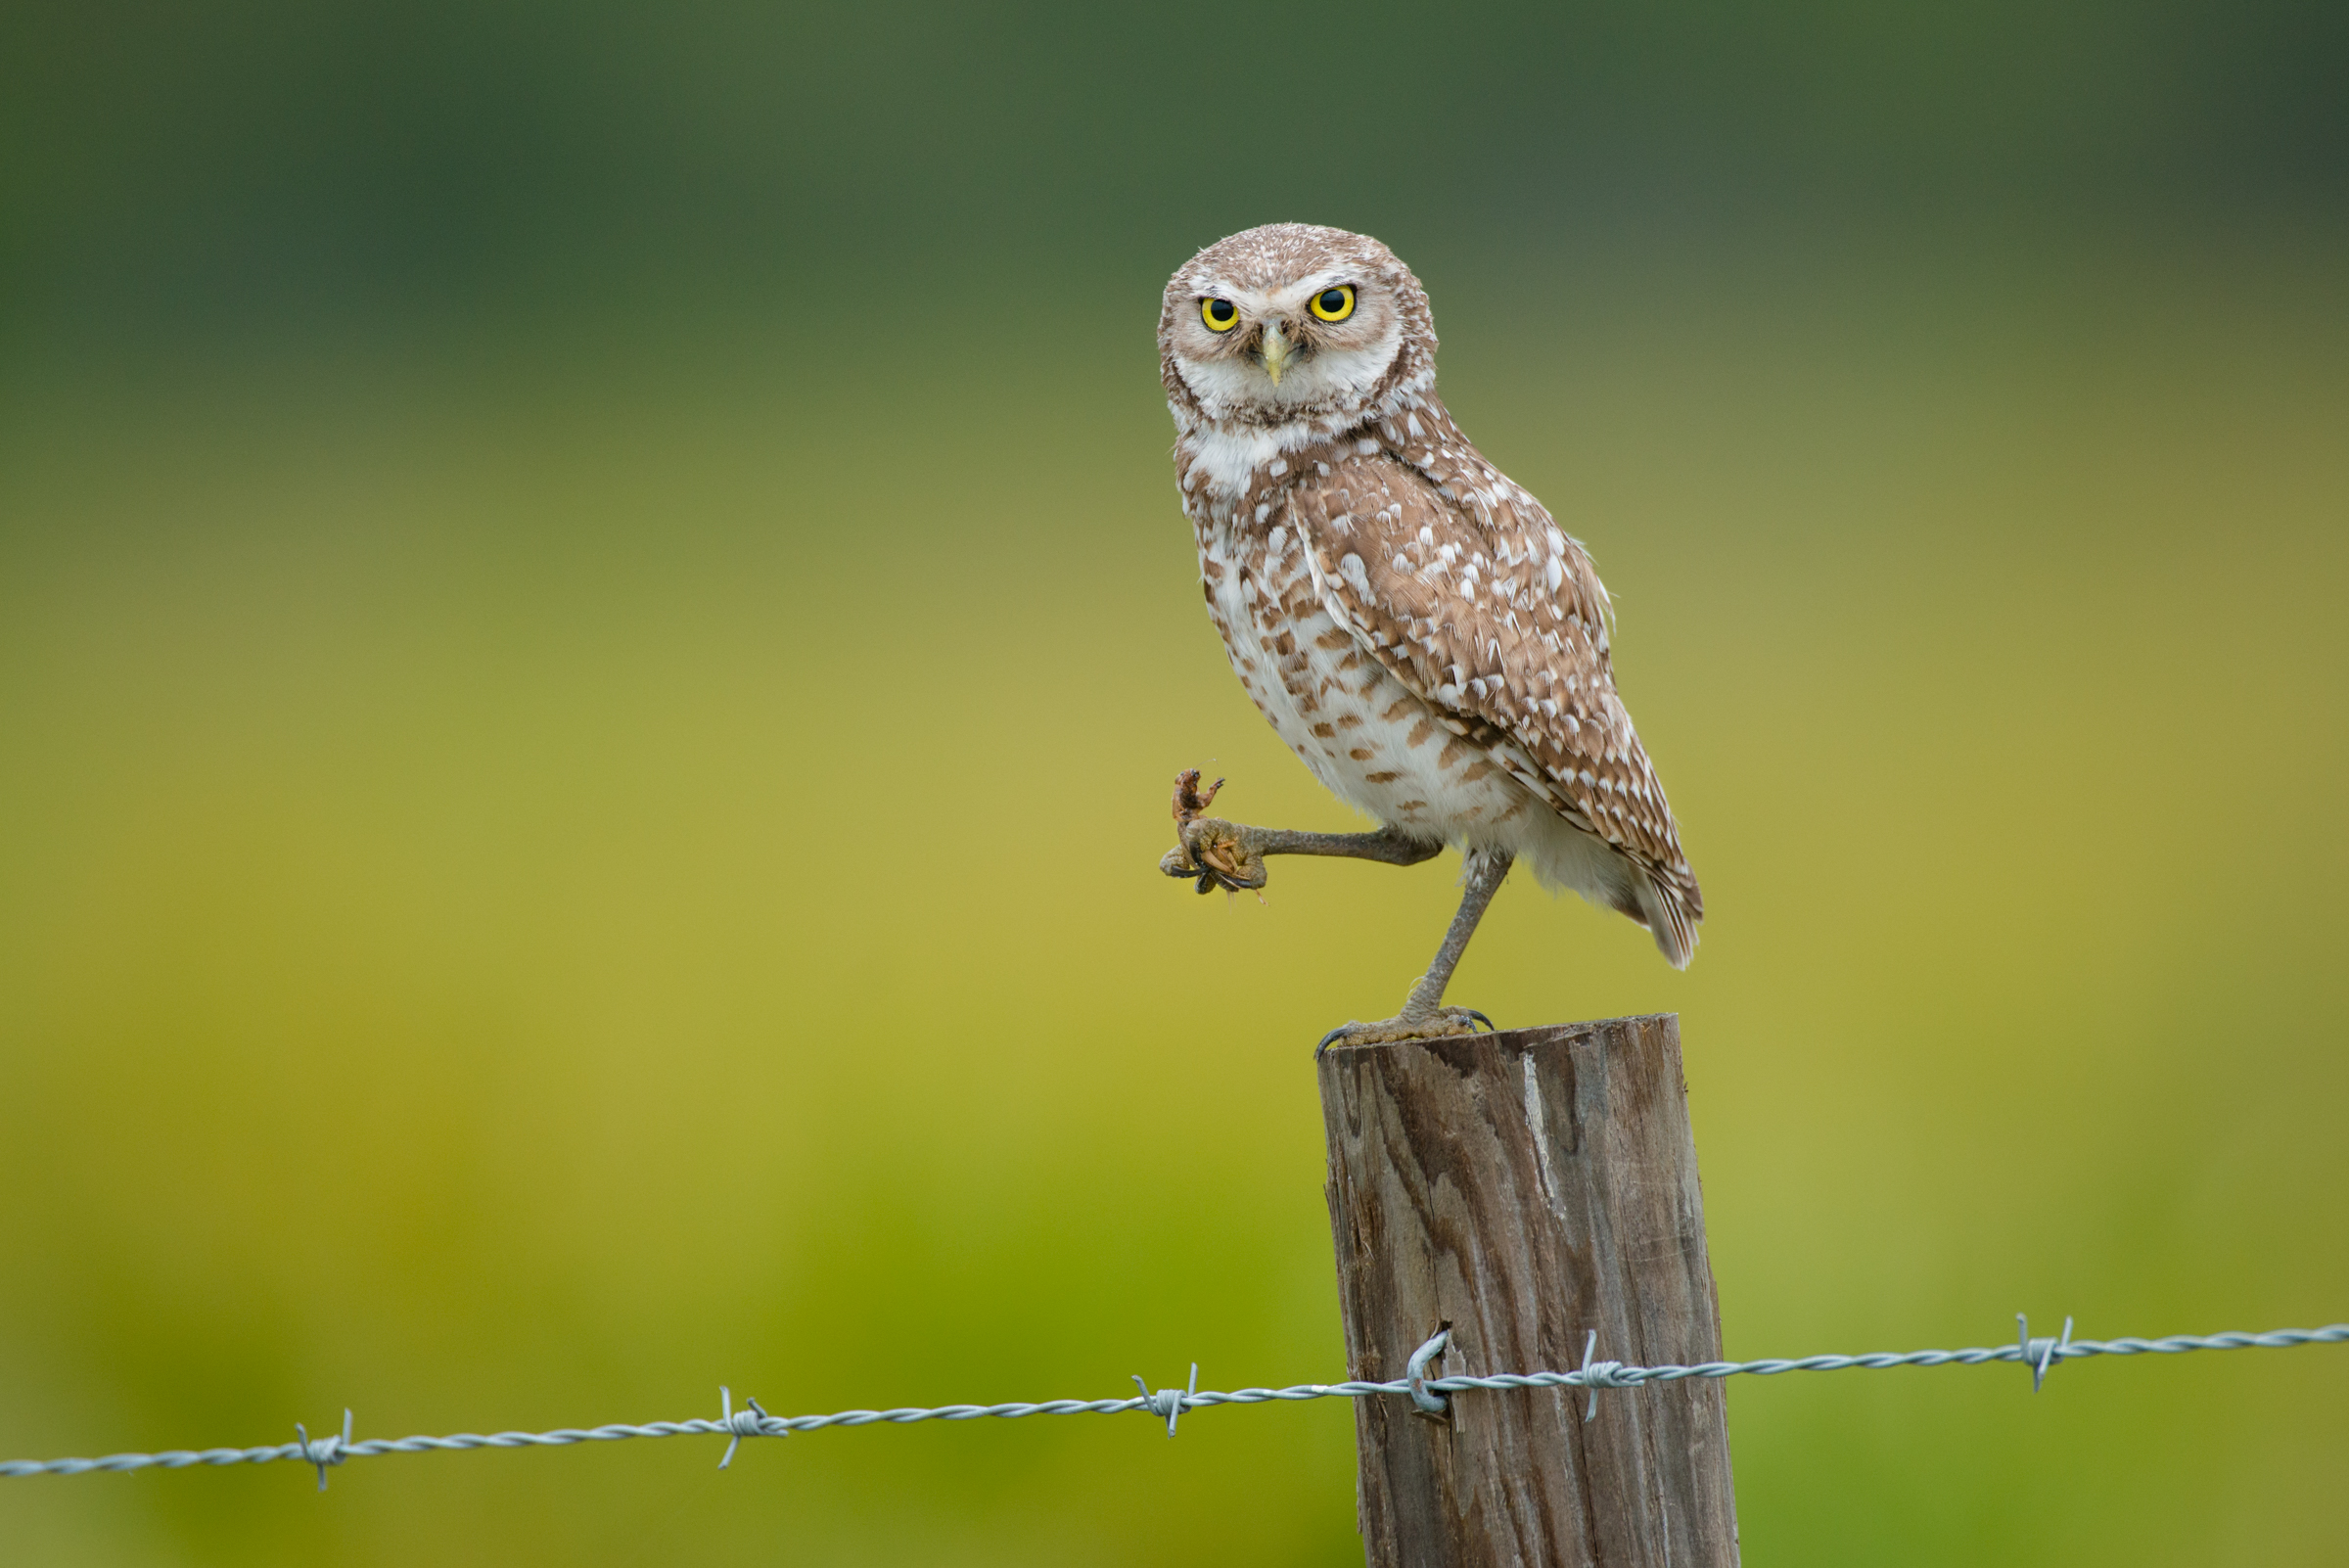 A burrowing owl holds a mole cricket that it caught on Camp Lonesome Ranch in Florida's Osceola County. Studies have shown that ranches support as much bird life as adjacent public conservation lands.